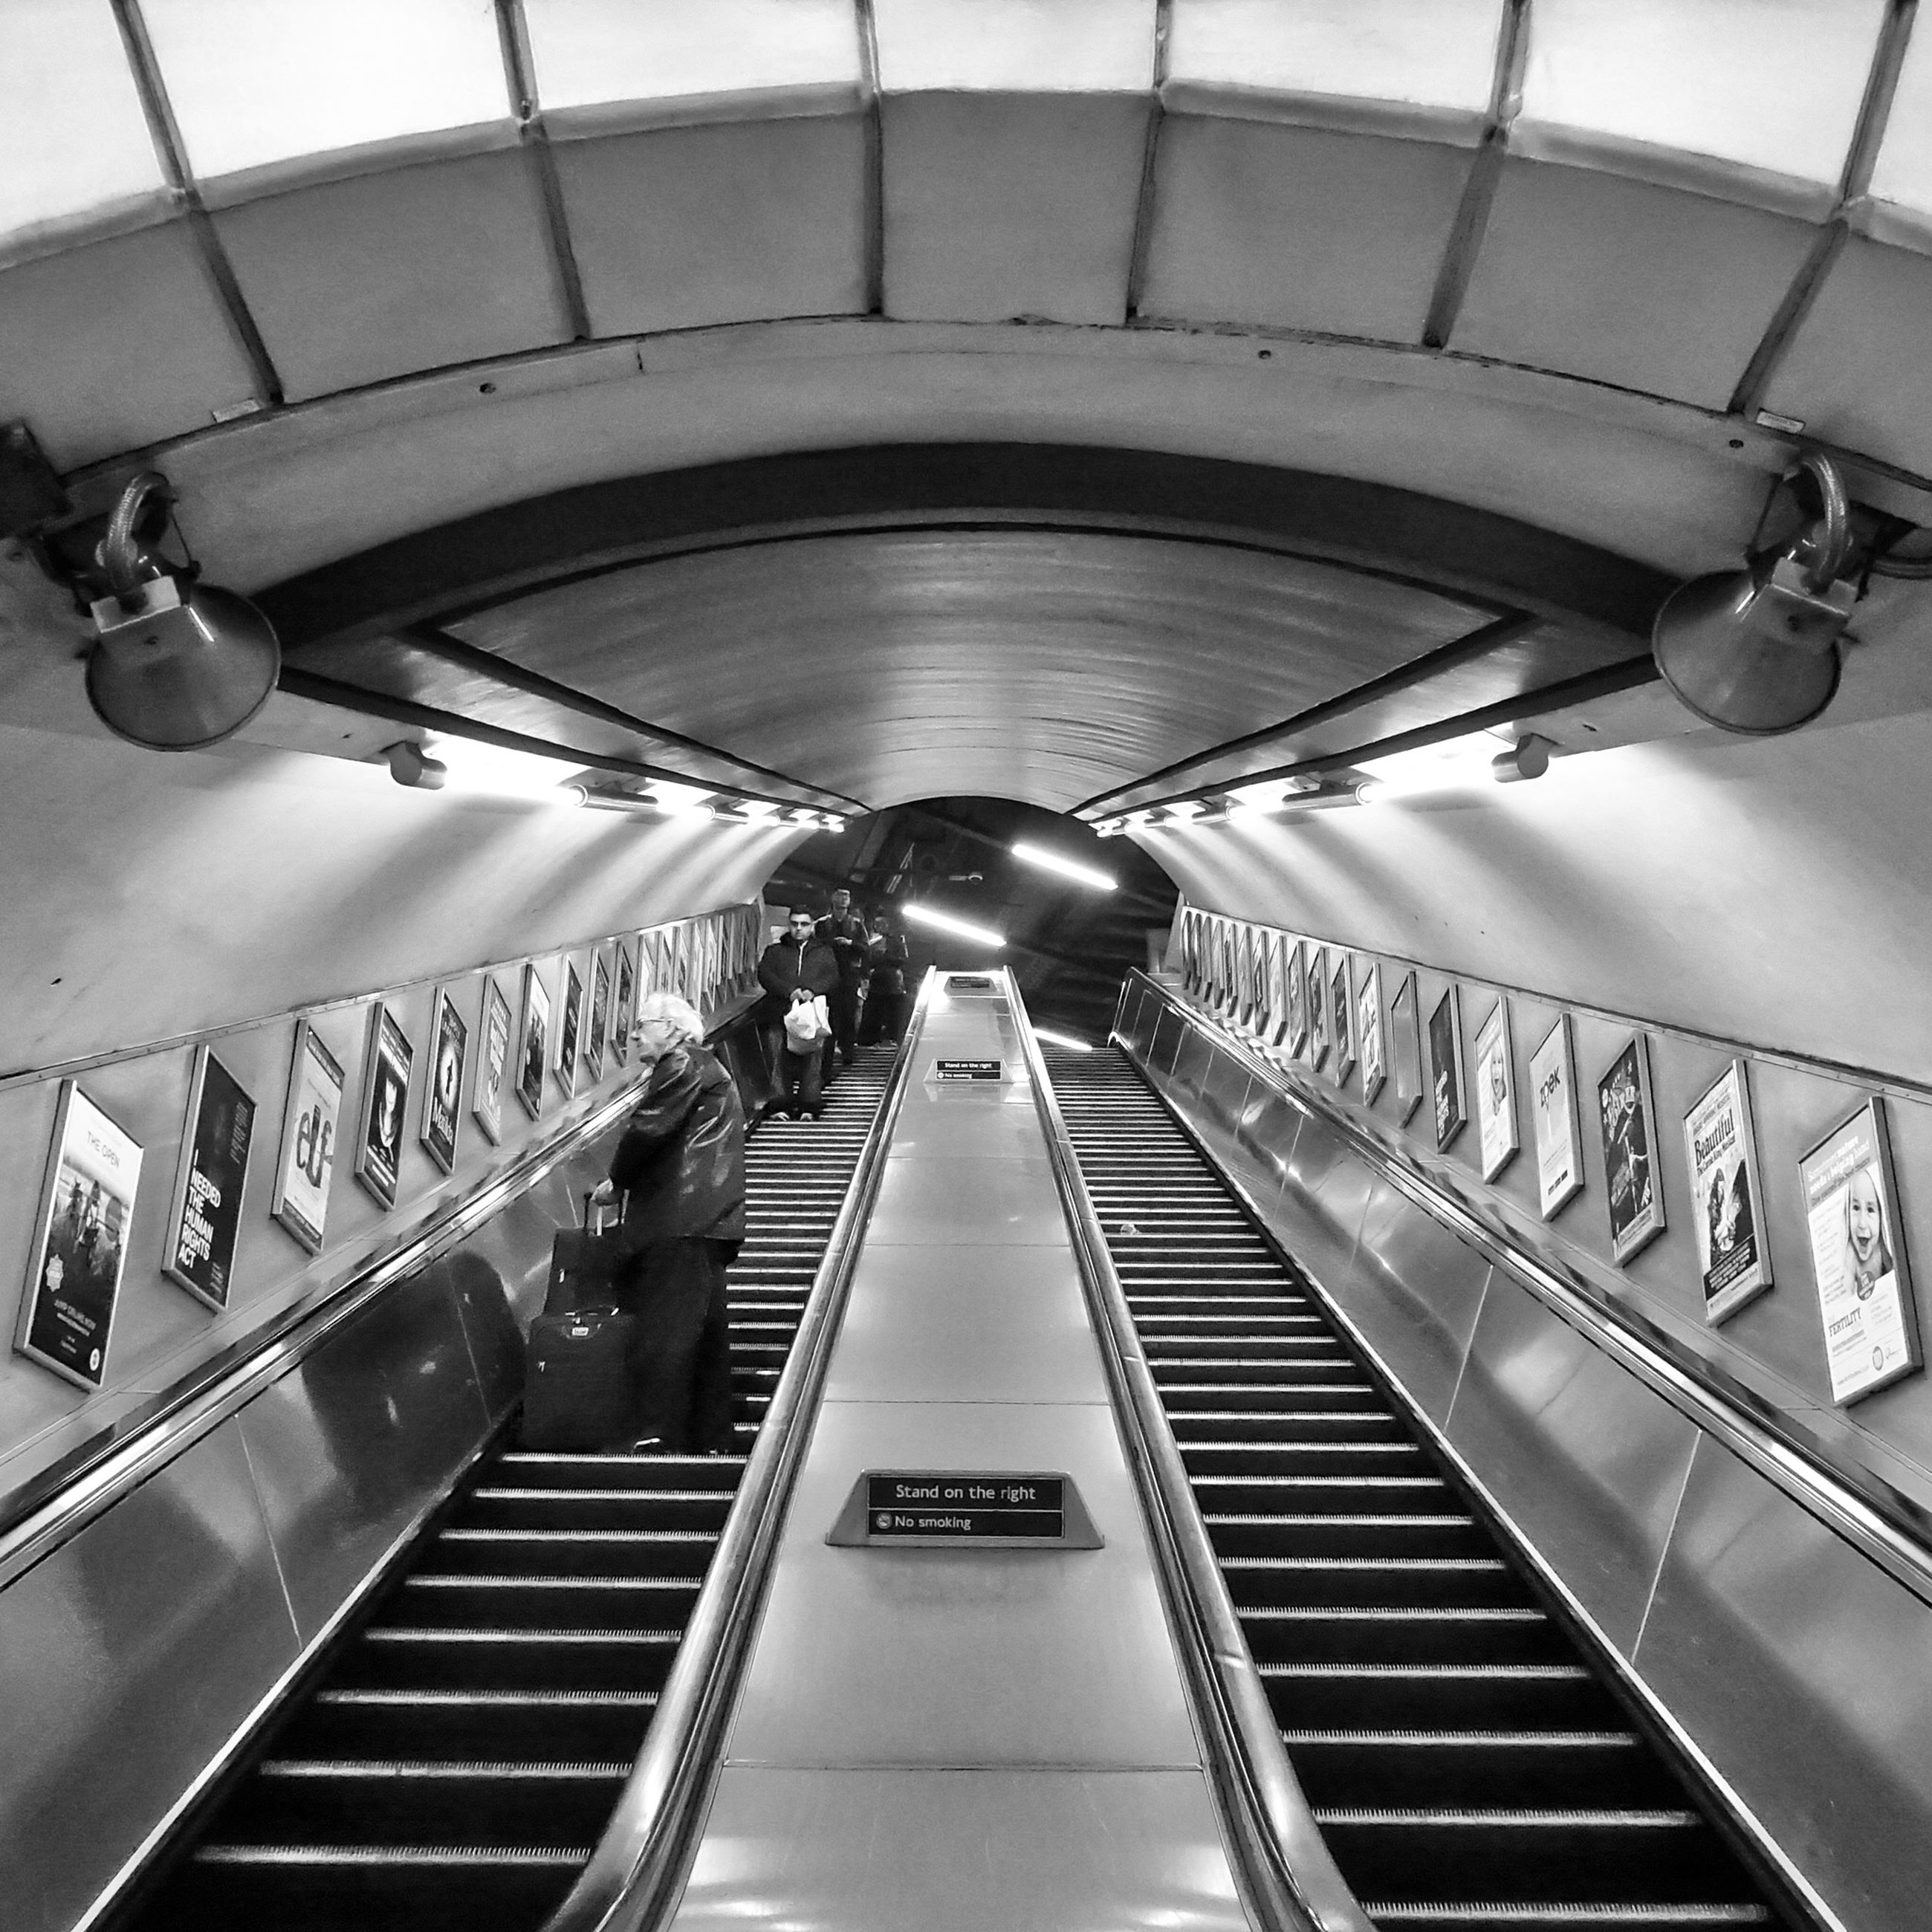 indoors, steps and staircases, escalator, ceiling, illuminated, steps, staircase, the way forward, railing, architecture, built structure, diminishing perspective, high angle view, modern, subway station, transportation, incidental people, vanishing point, technology, railroad station